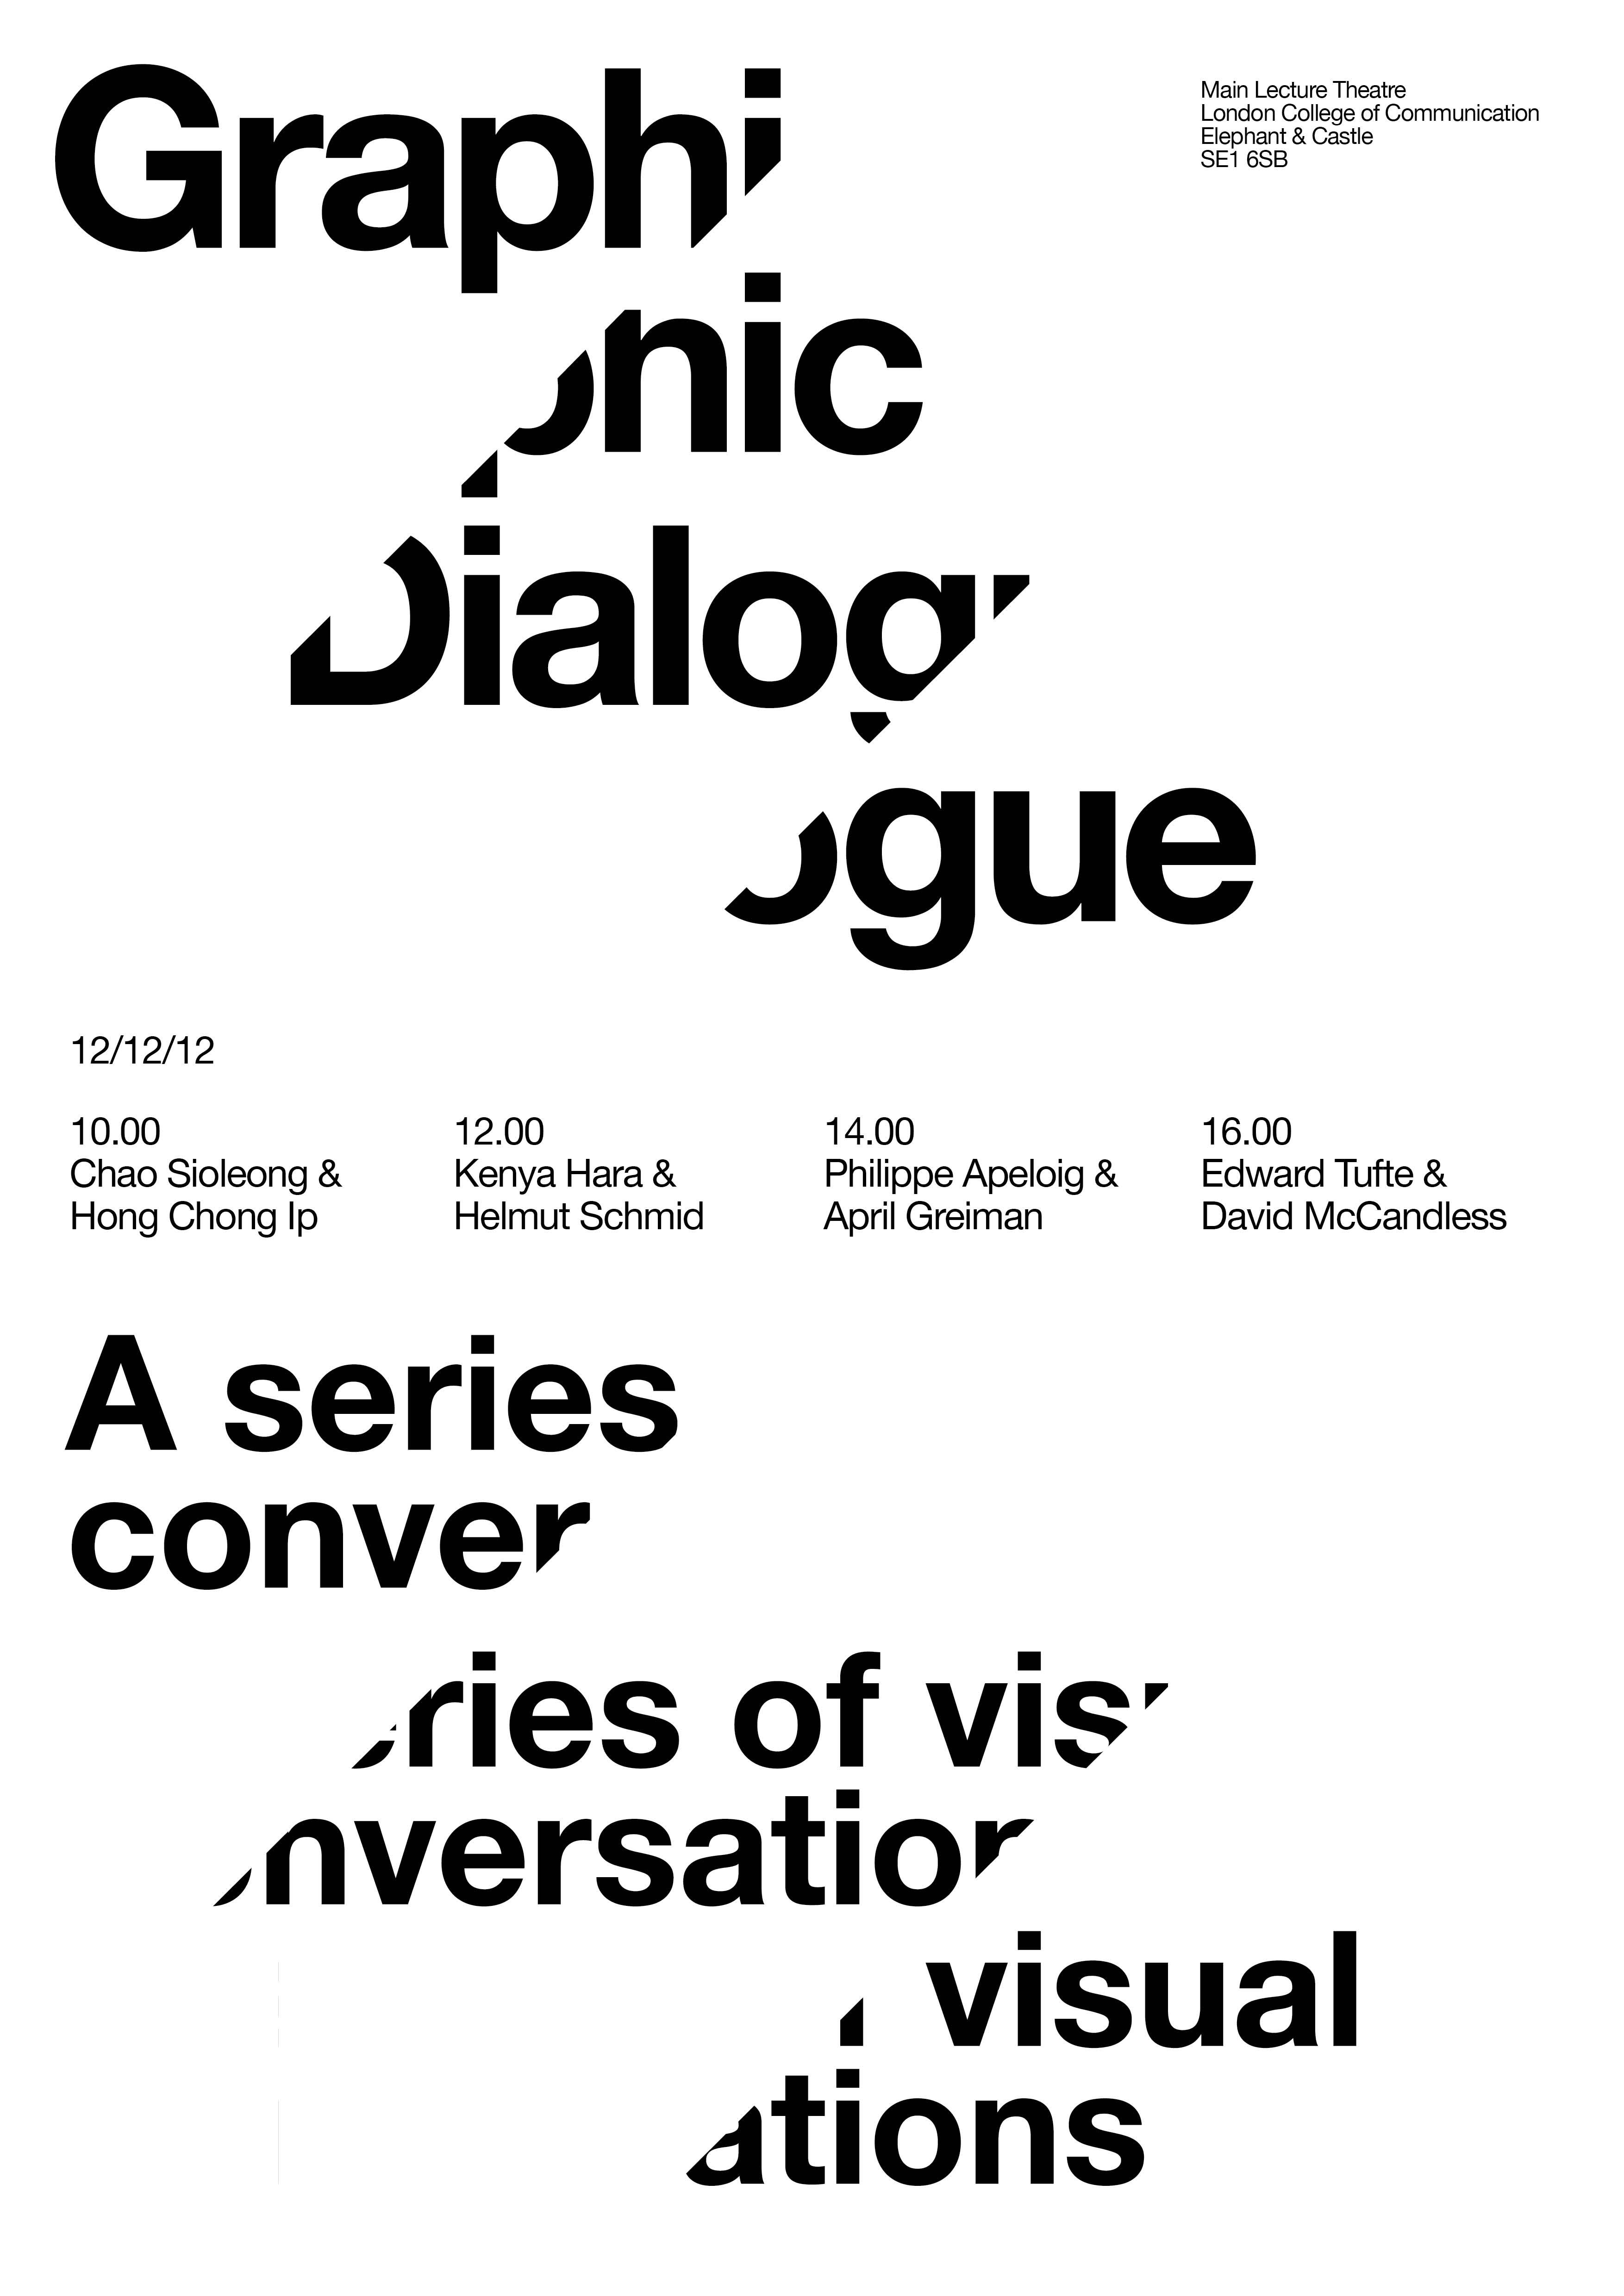 The lines created by slicing the text creates an opportunity to see the power of CONTINUATION within an image. The viewer is able to read the text, despite the words being separated on different lines.